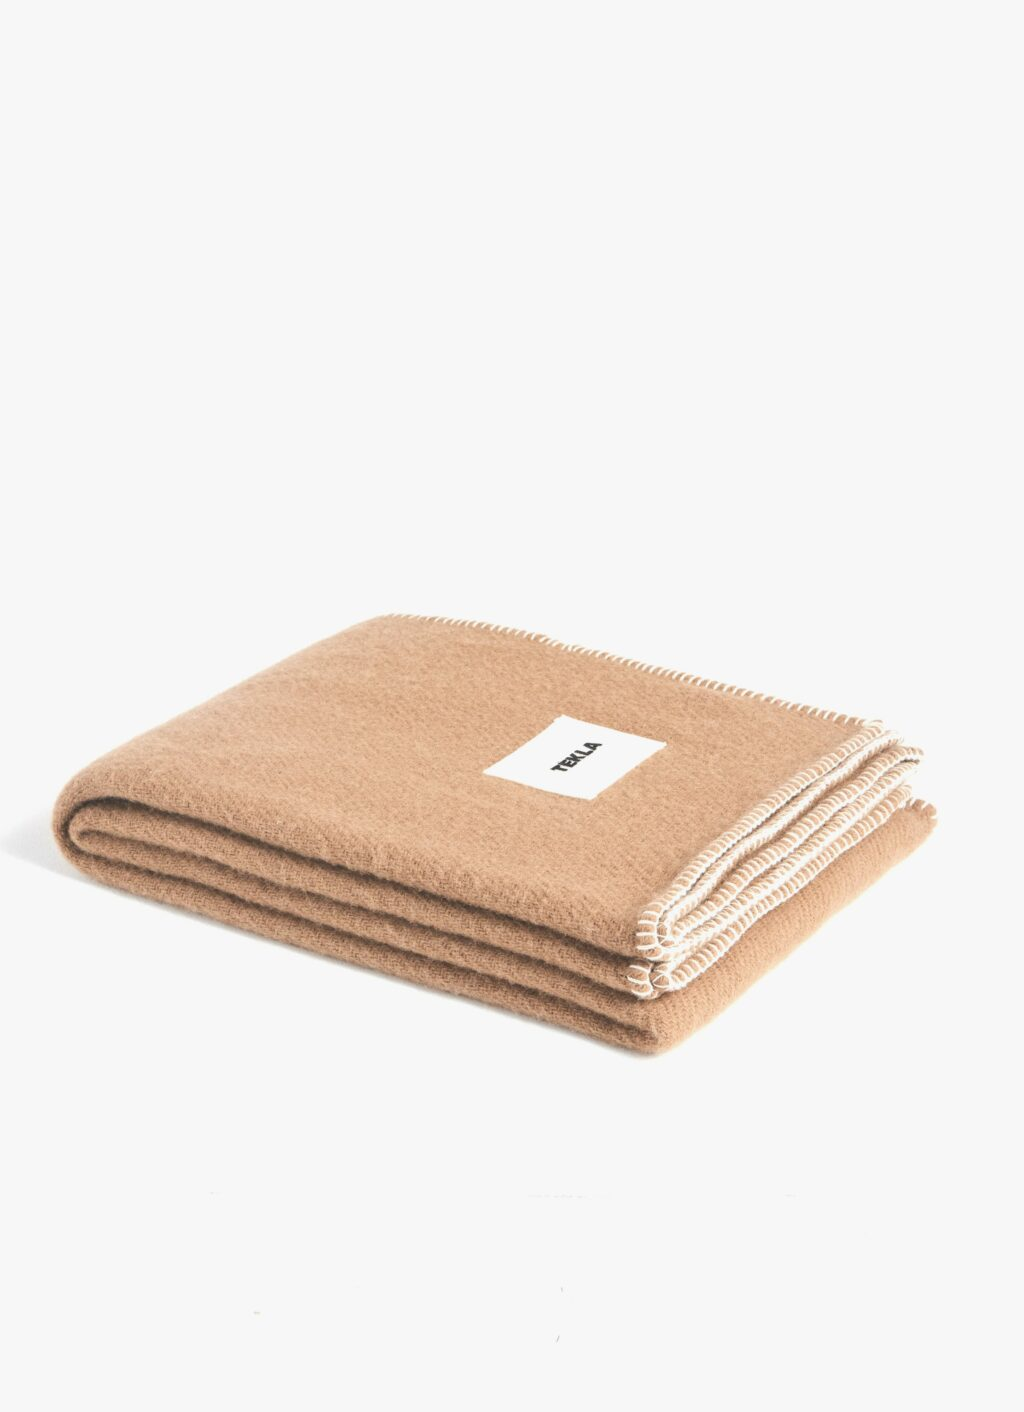 Tekla - Pure New Wool Blanket - Hazel Brown - 130x180cm